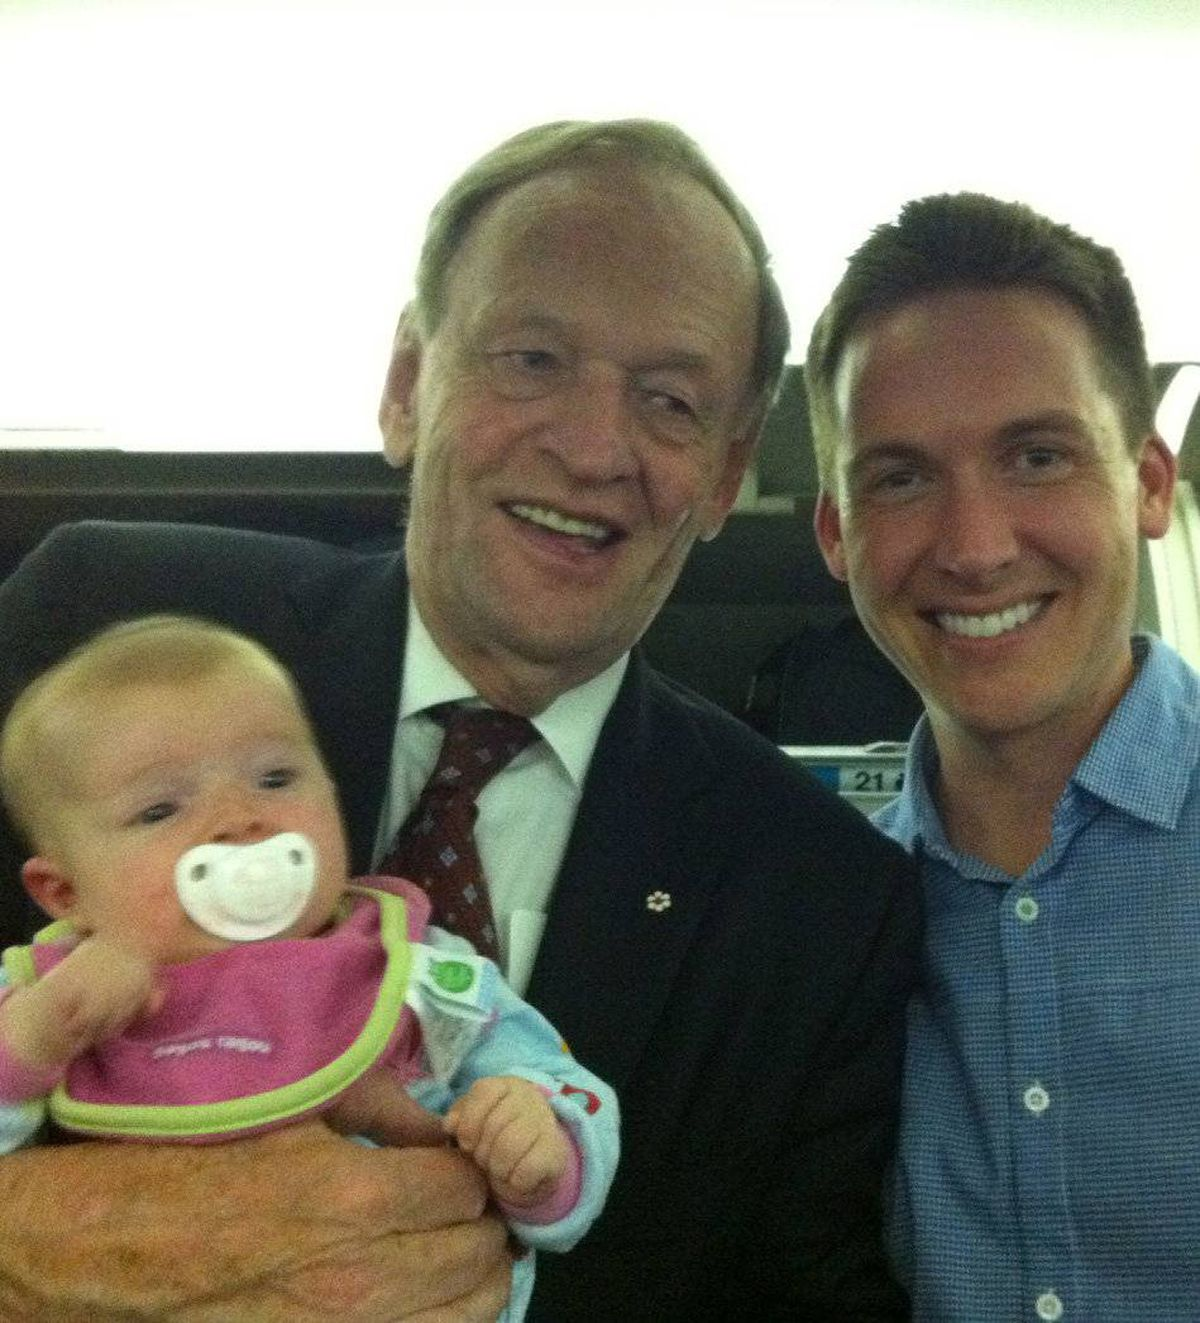 When returning from our first family vacation with our three month old daughter, we ran into Jean Chretien on a Westjet flight...